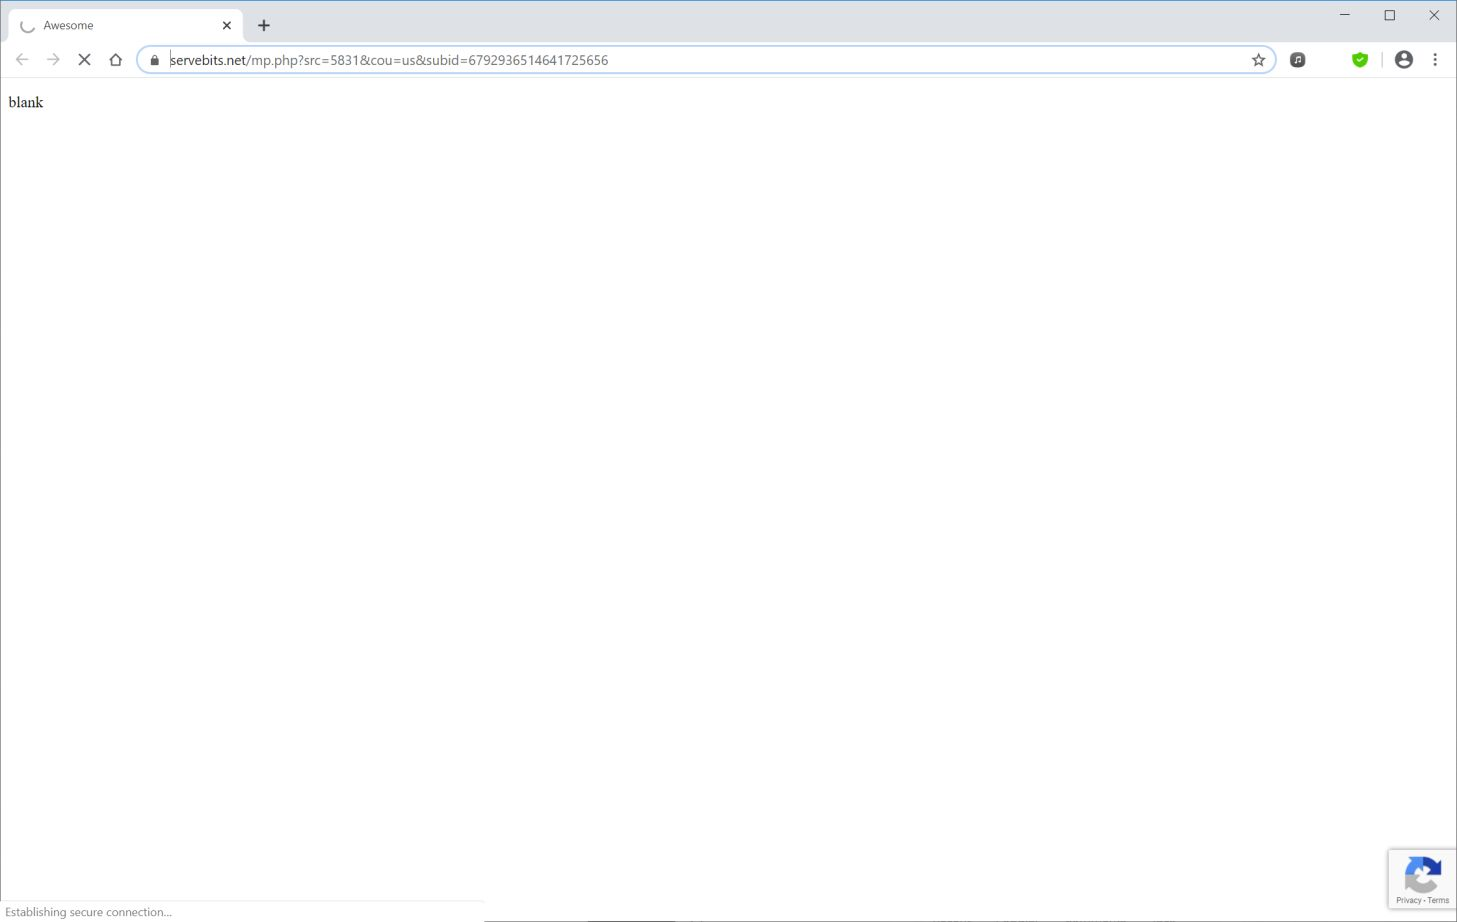 Image: Chrome browser is redirected to Servebits.net